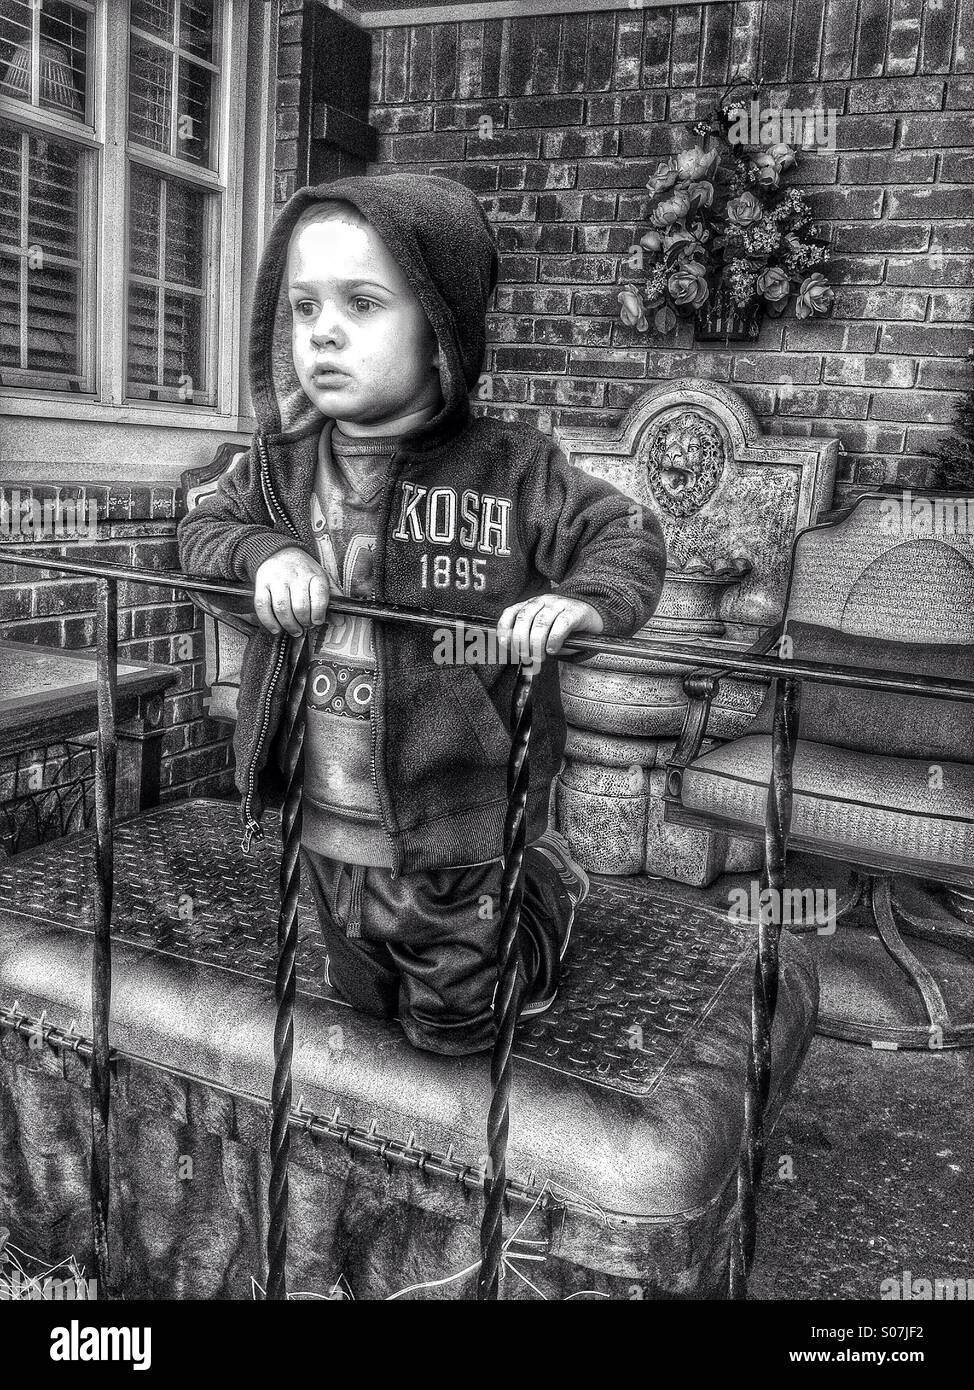 4 year old boy leaning on a porch railing and apparently thinking seriously. HDR Black & White Stock Photo